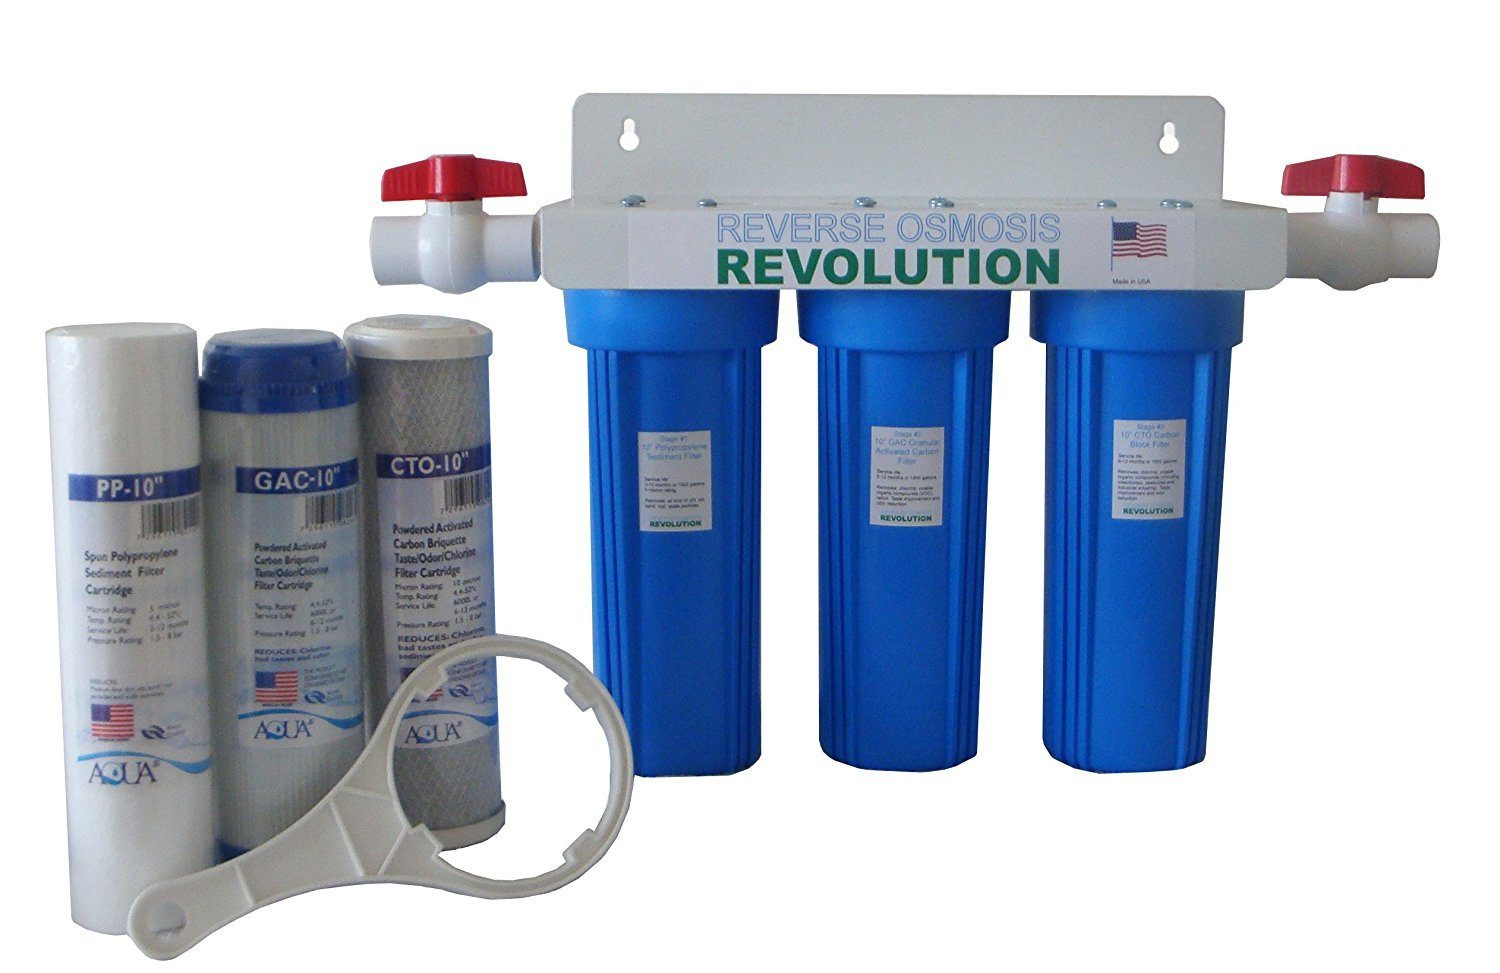 Reverse Osmosis Revolution - Best Whole House Water Filter